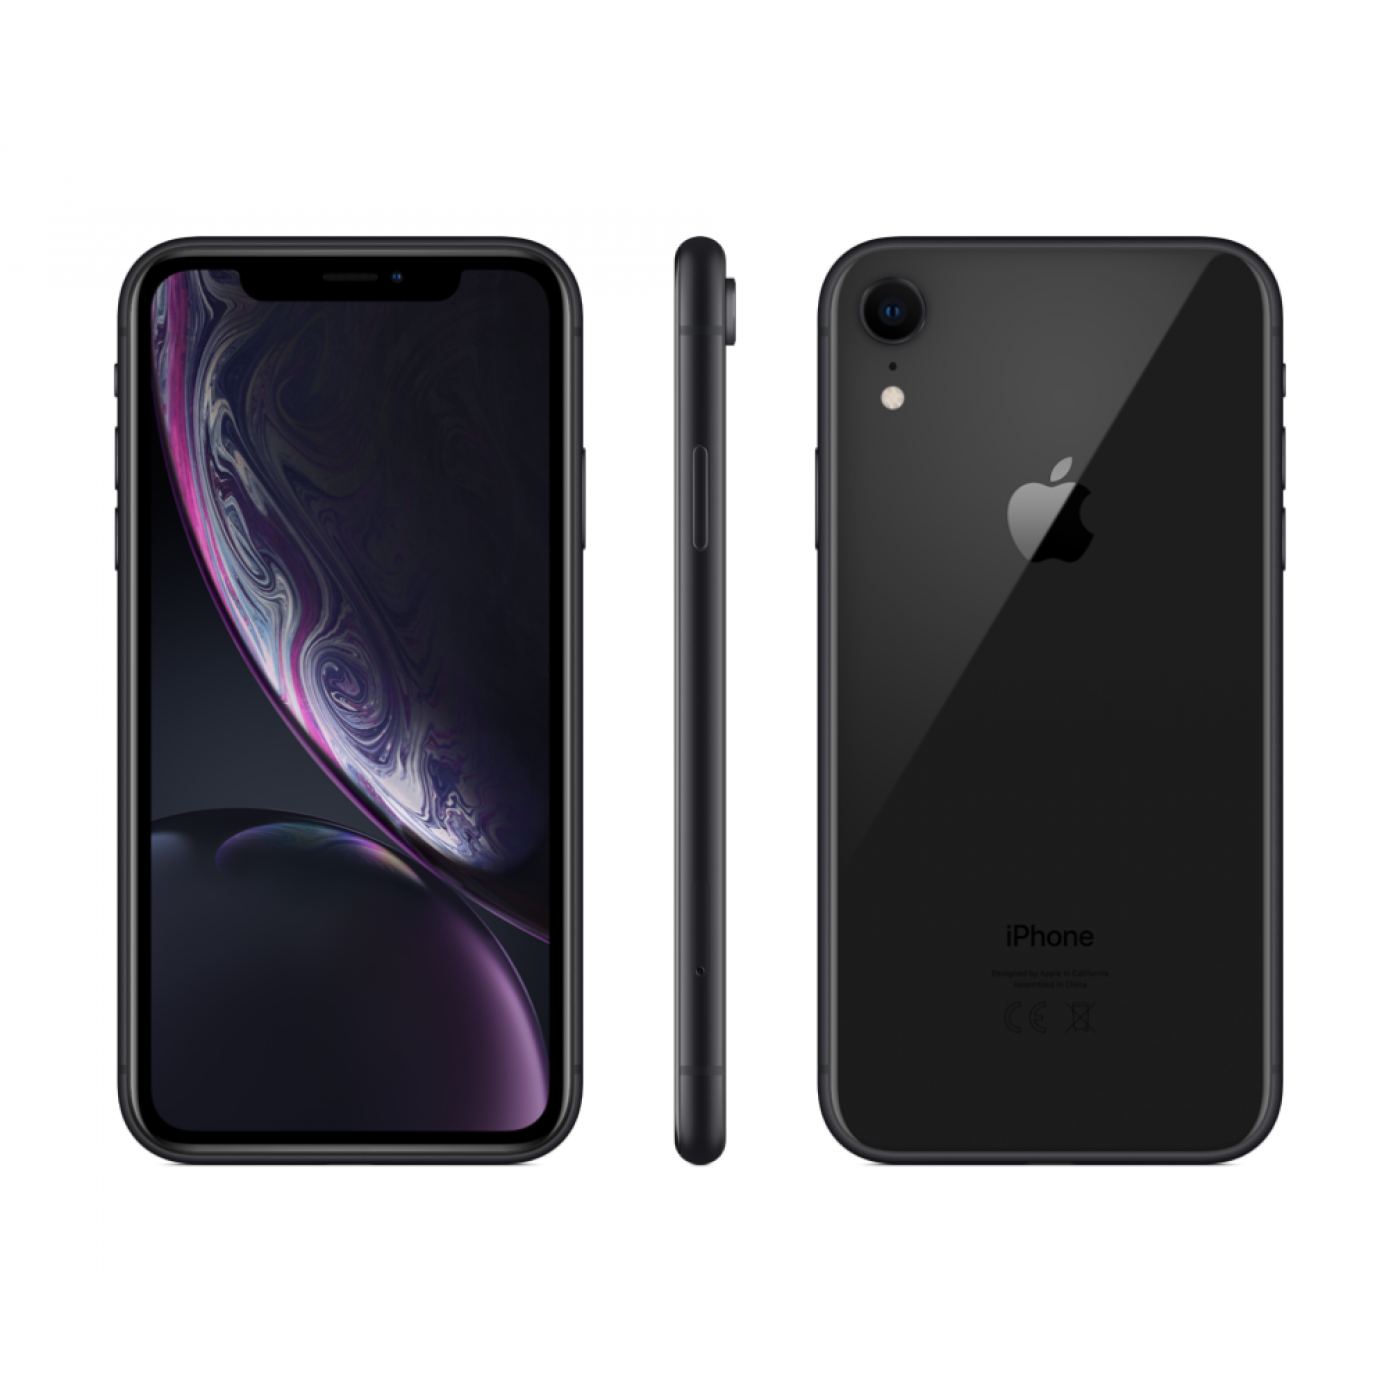 Apple iPhone XR 64GB Black.